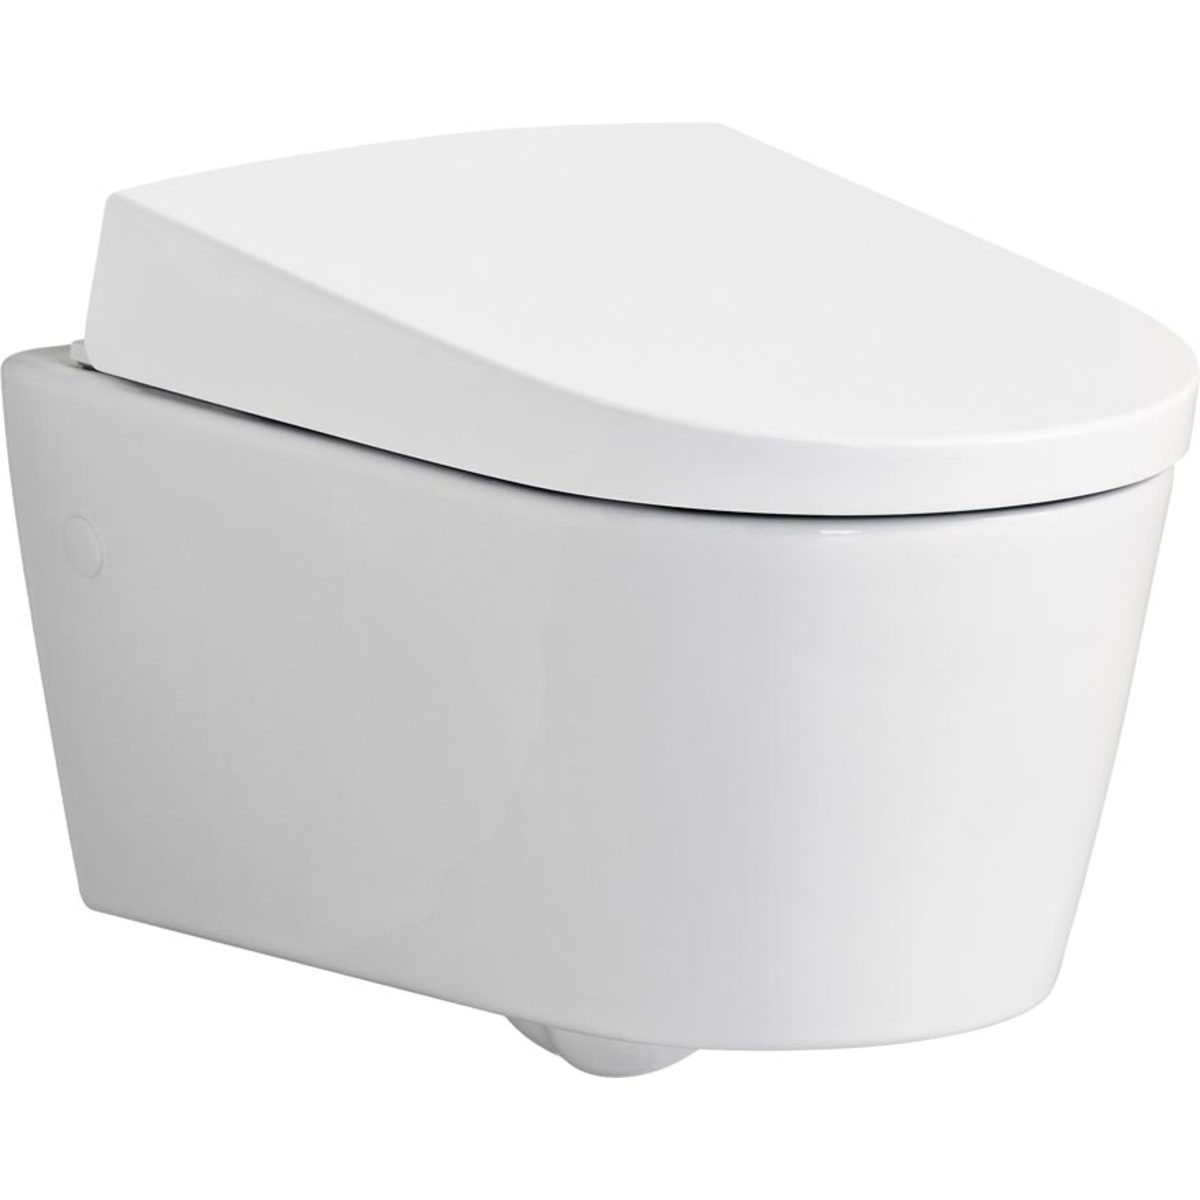 Geberit aquaclean sela wandcloset douche wc wit for Geberit products